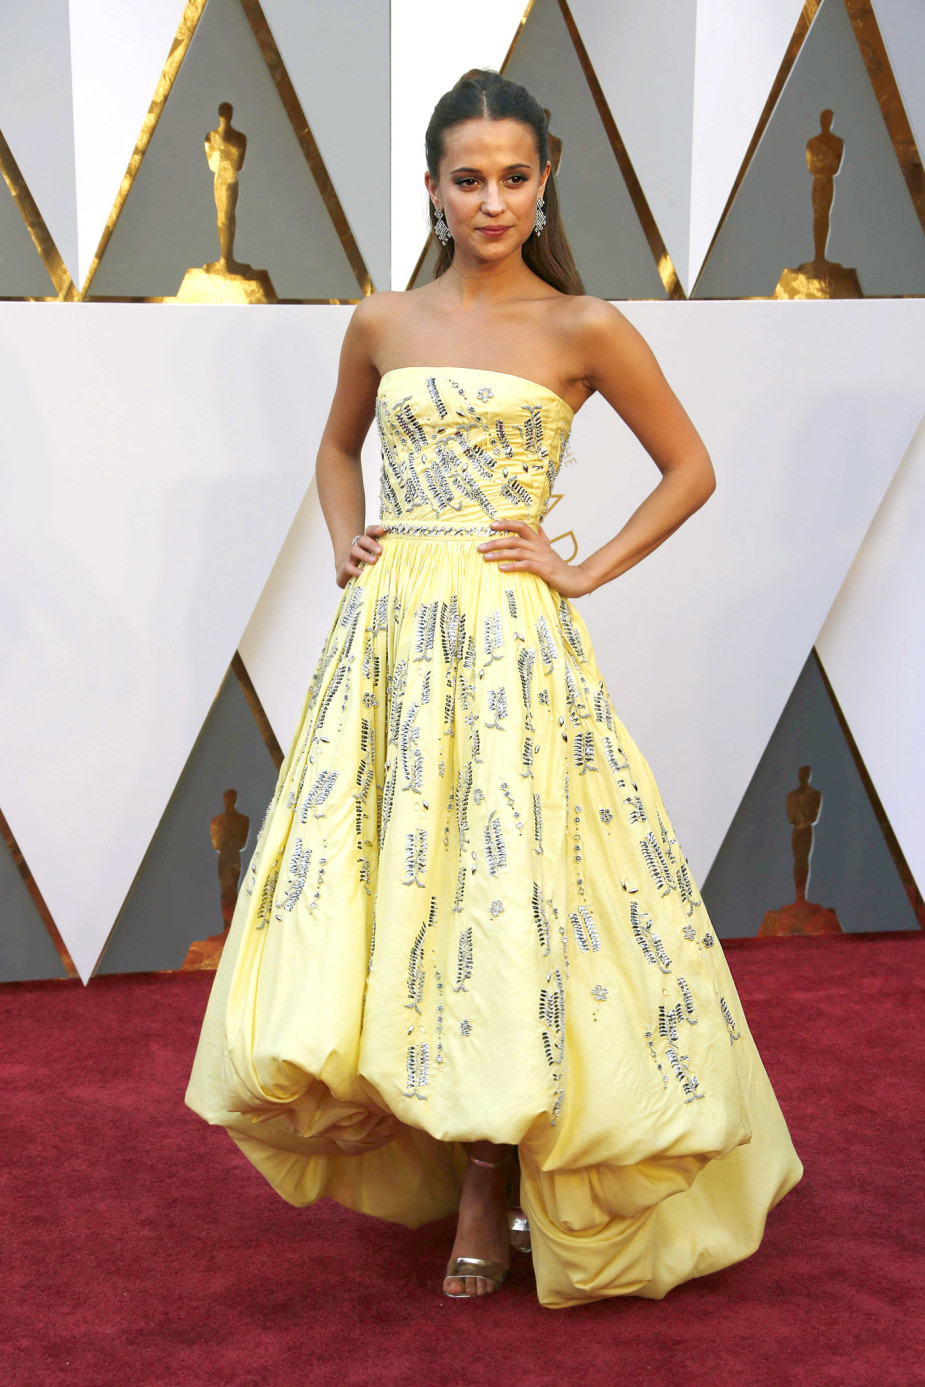 oscars-red-carpet-833-alicia-vikander-superJumbo-v3